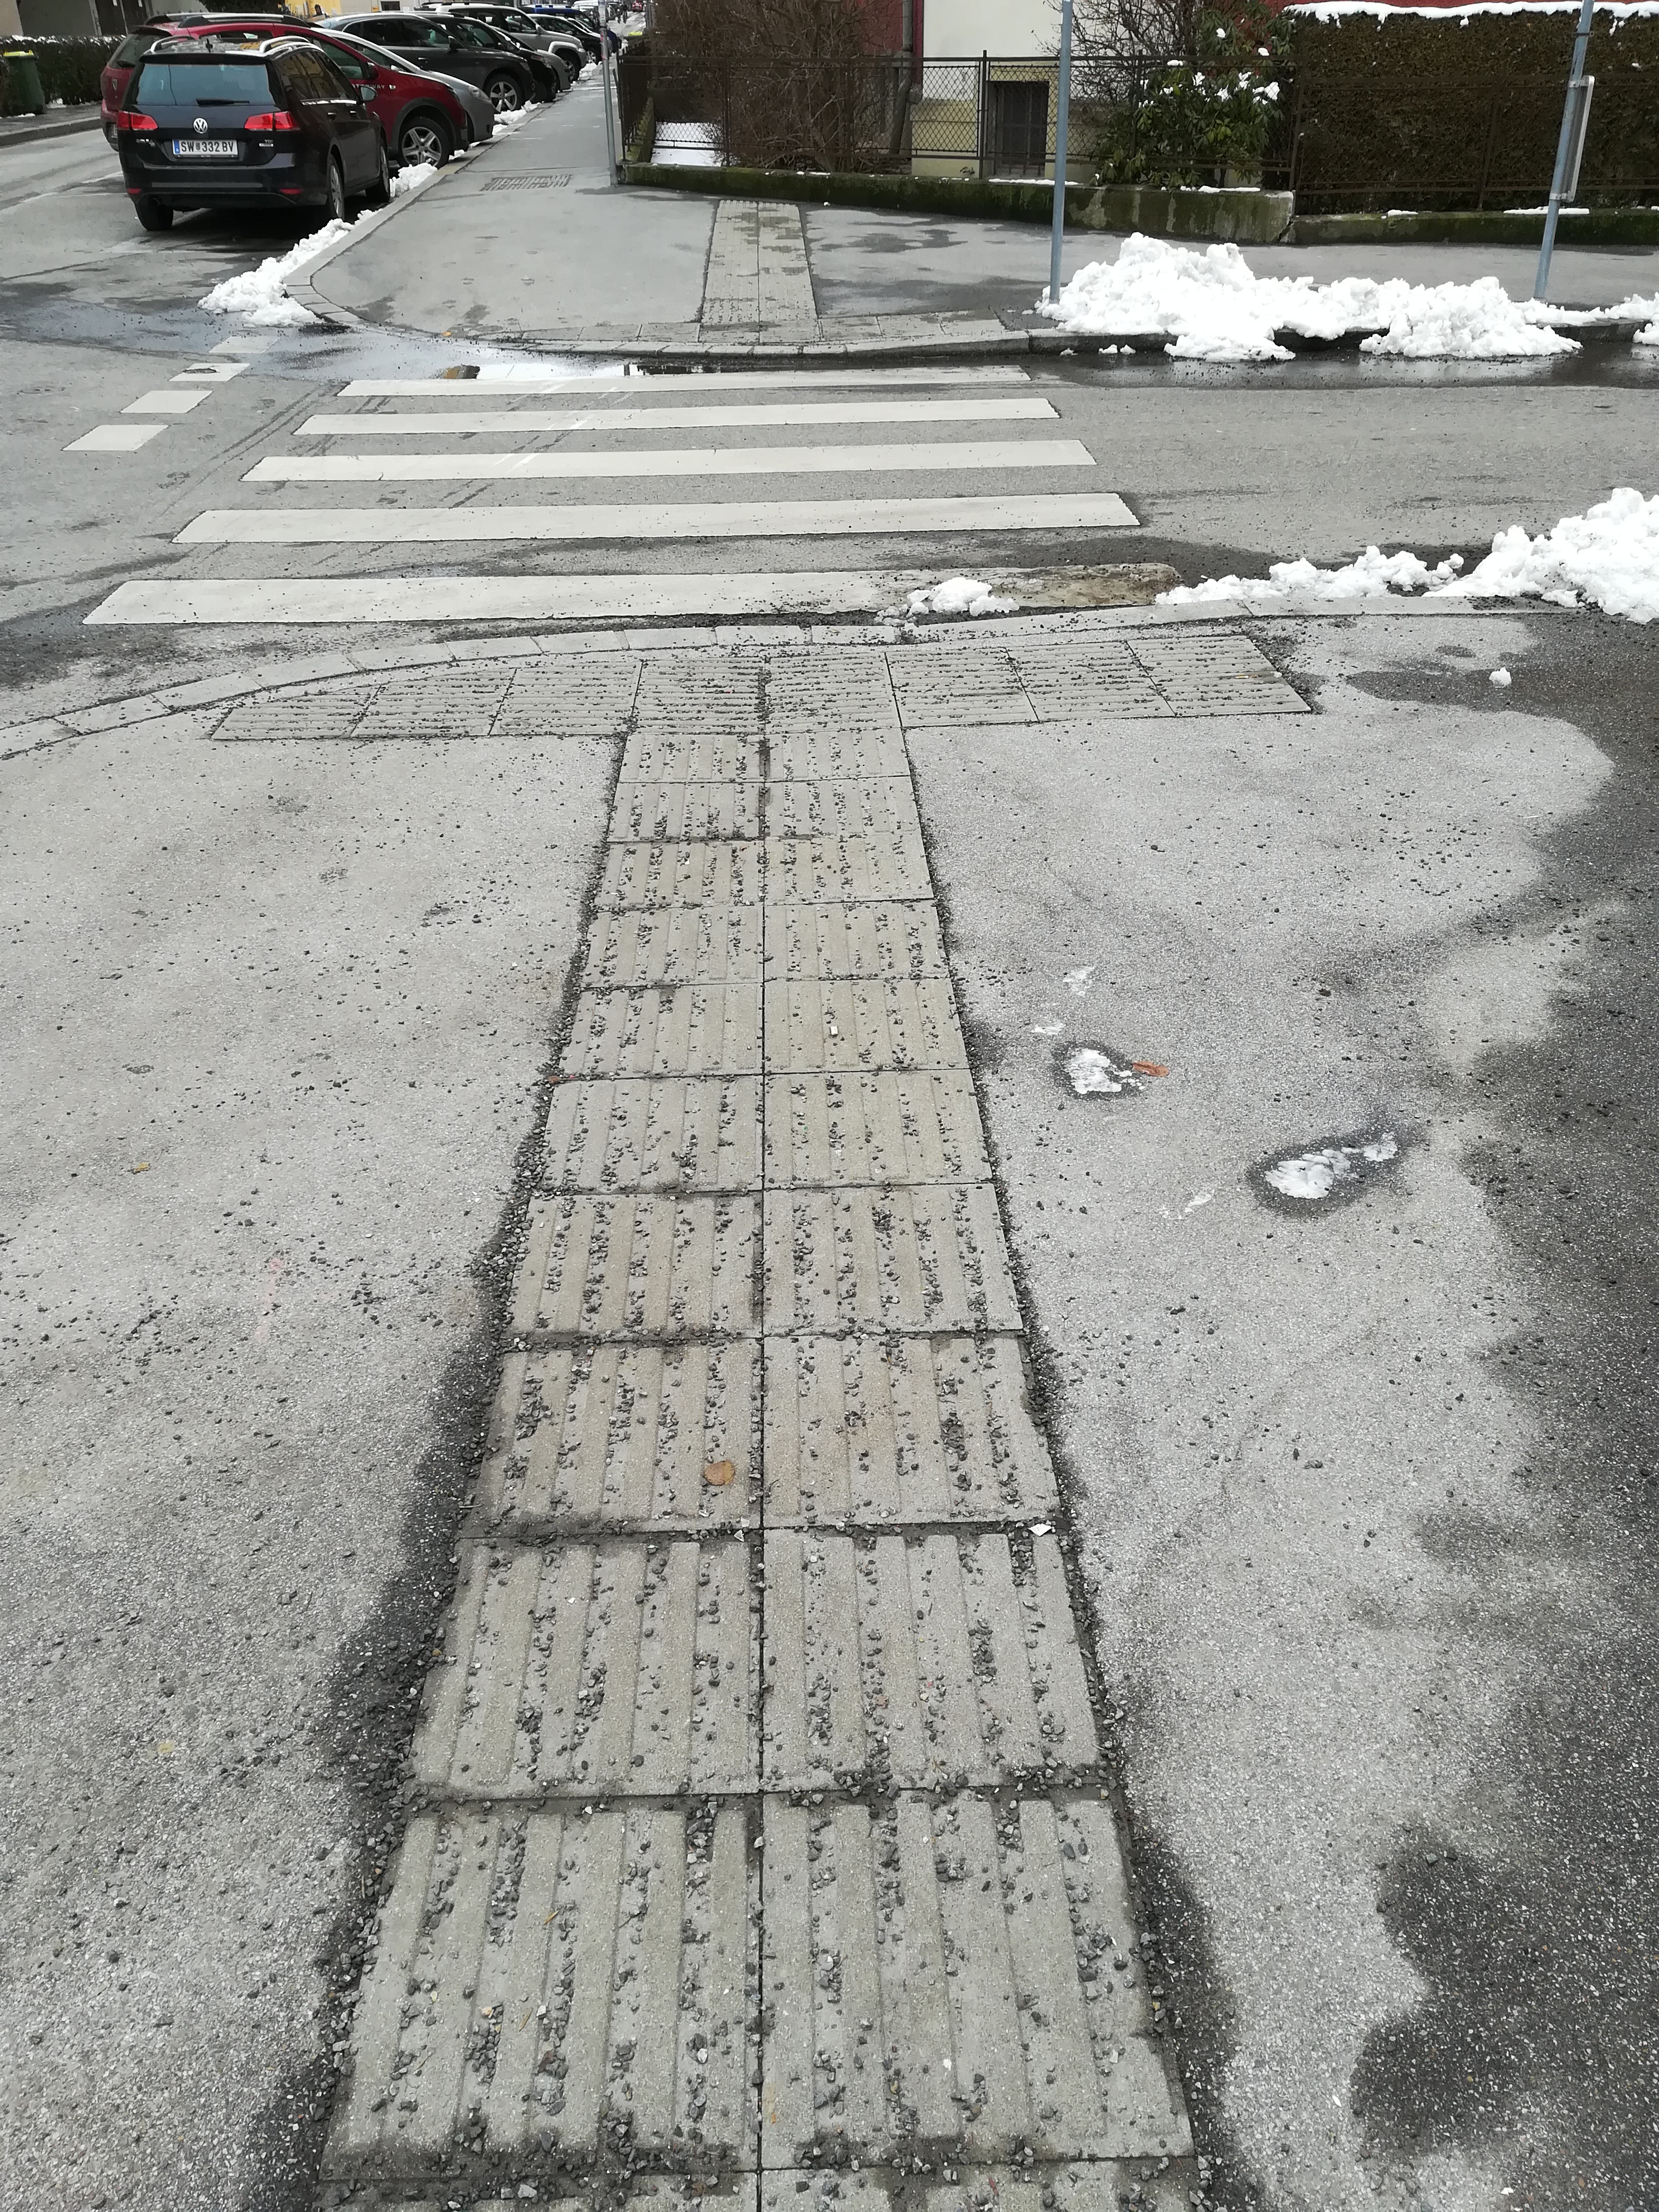 Loose gravel is covering the guiding lines in Winter